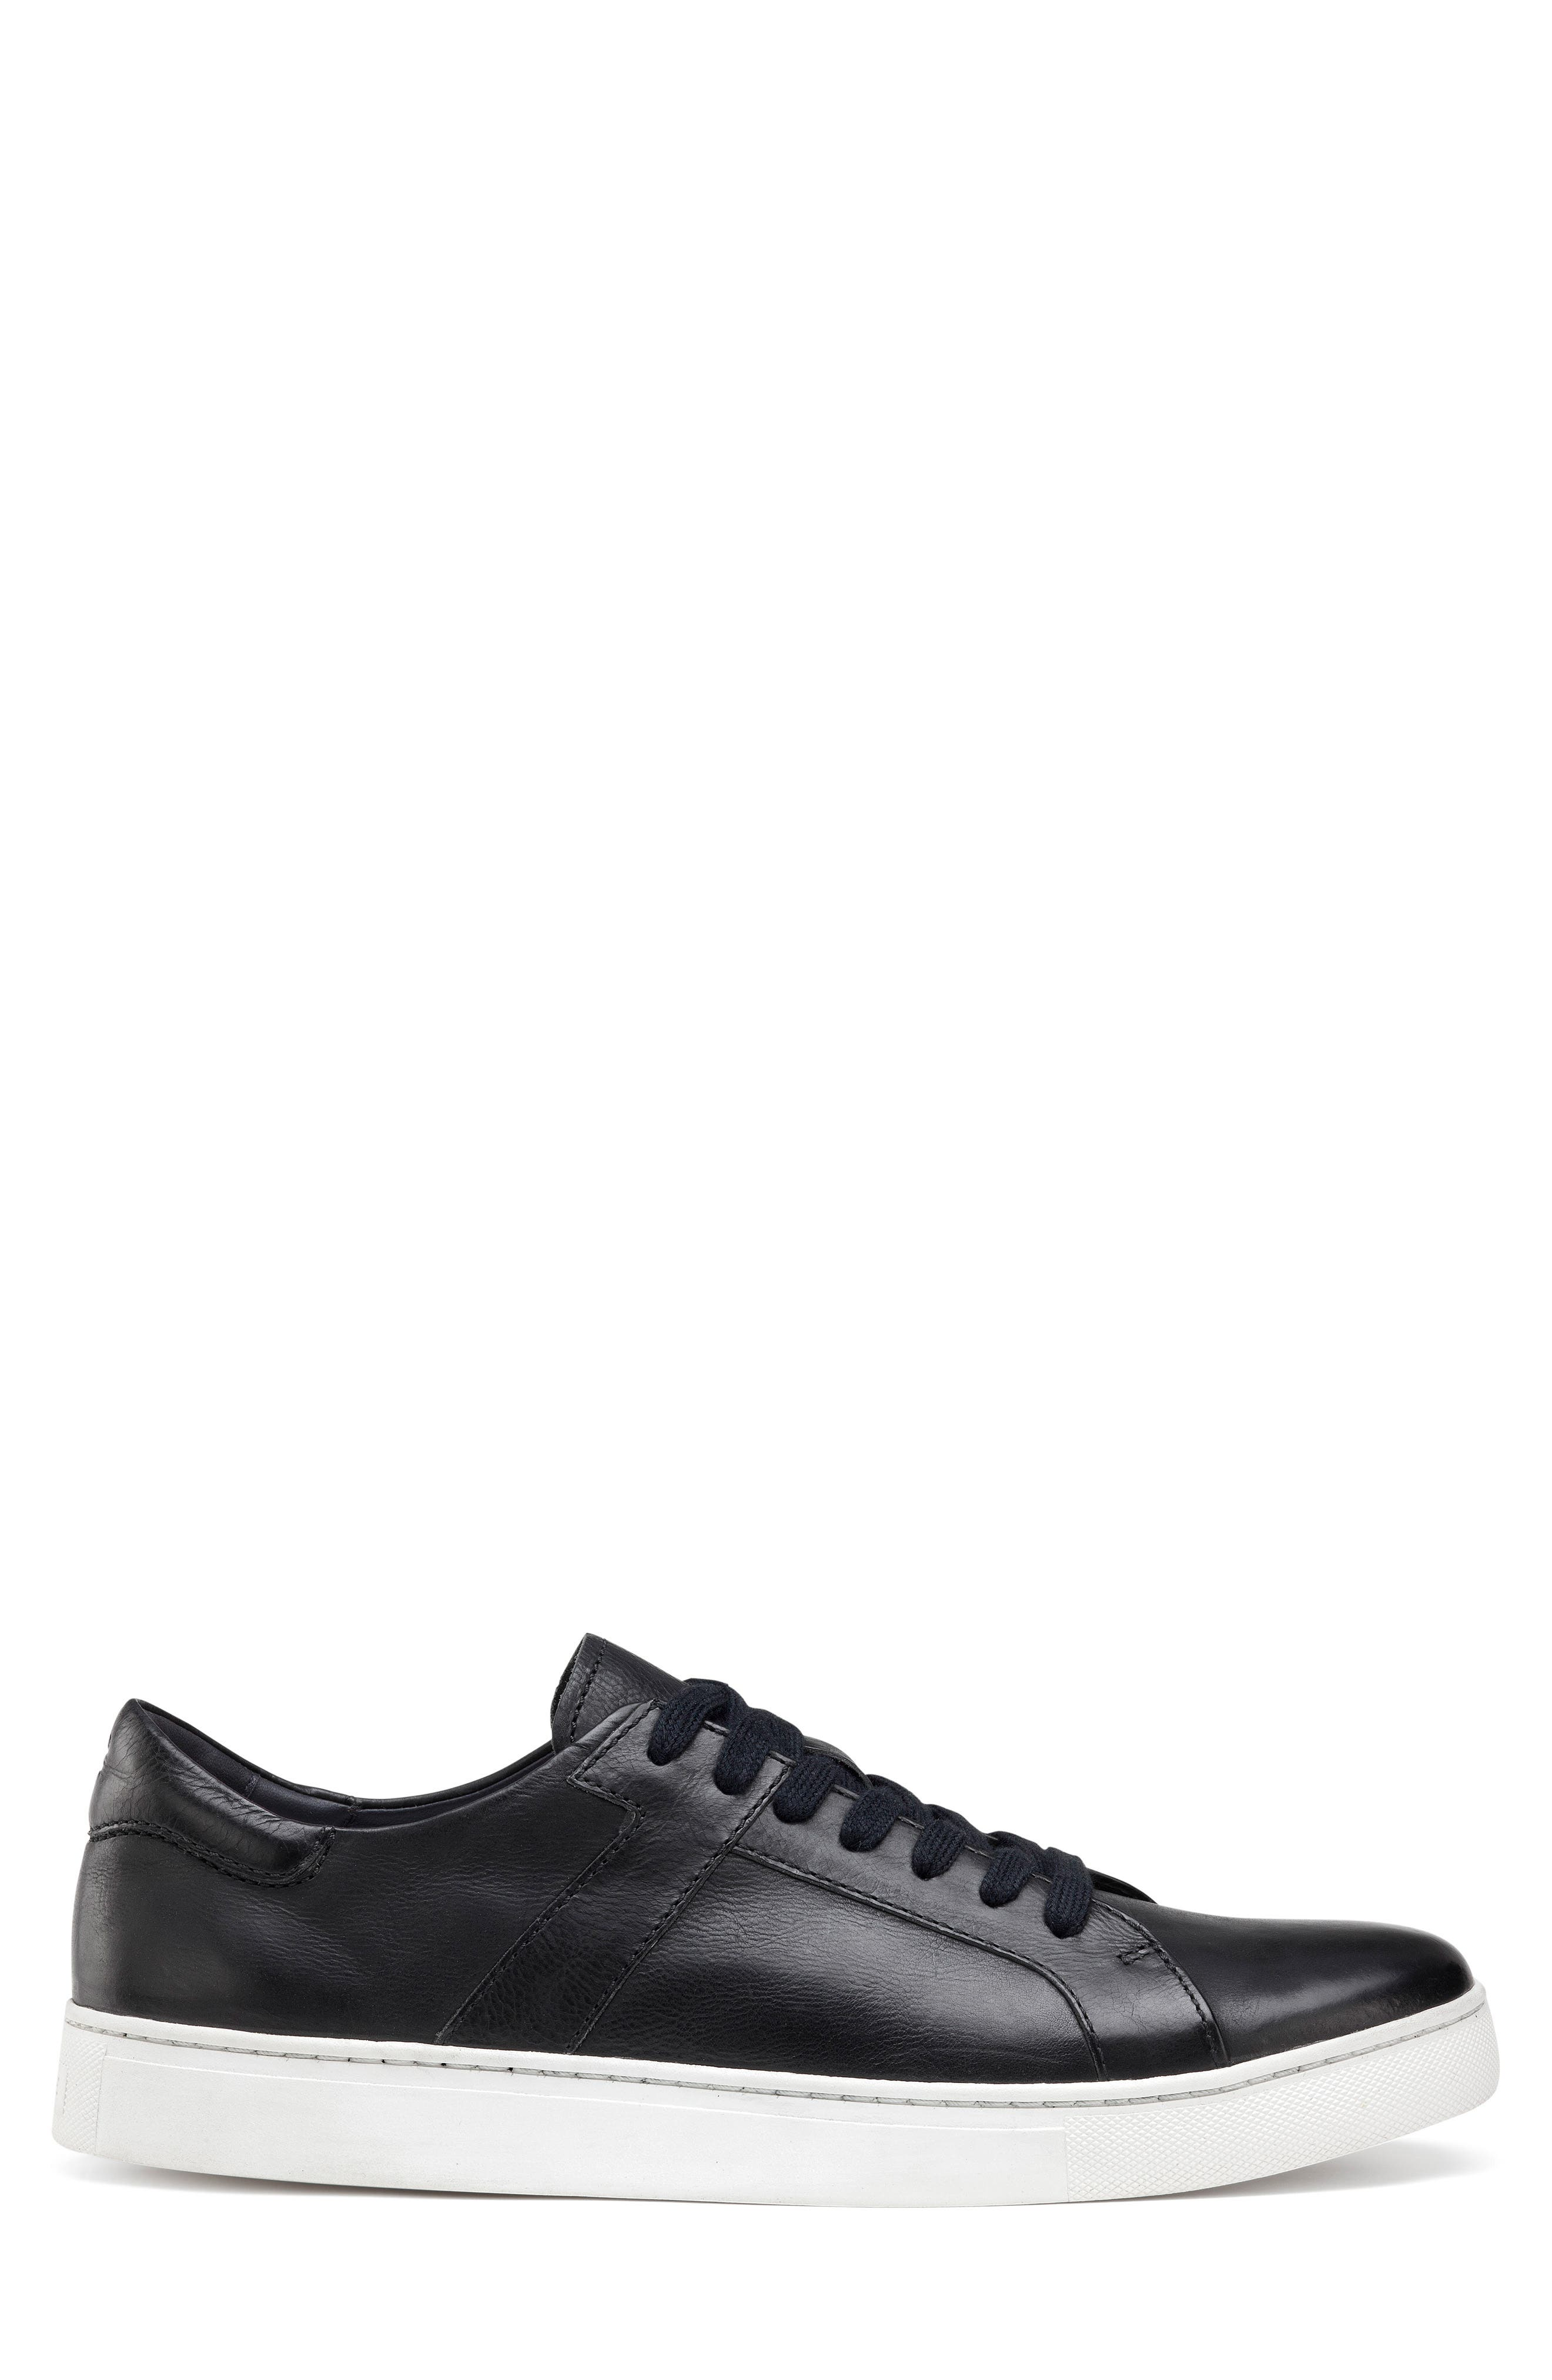 TRASK, Aaron Sneaker, Alternate thumbnail 3, color, BLACK LEATHER